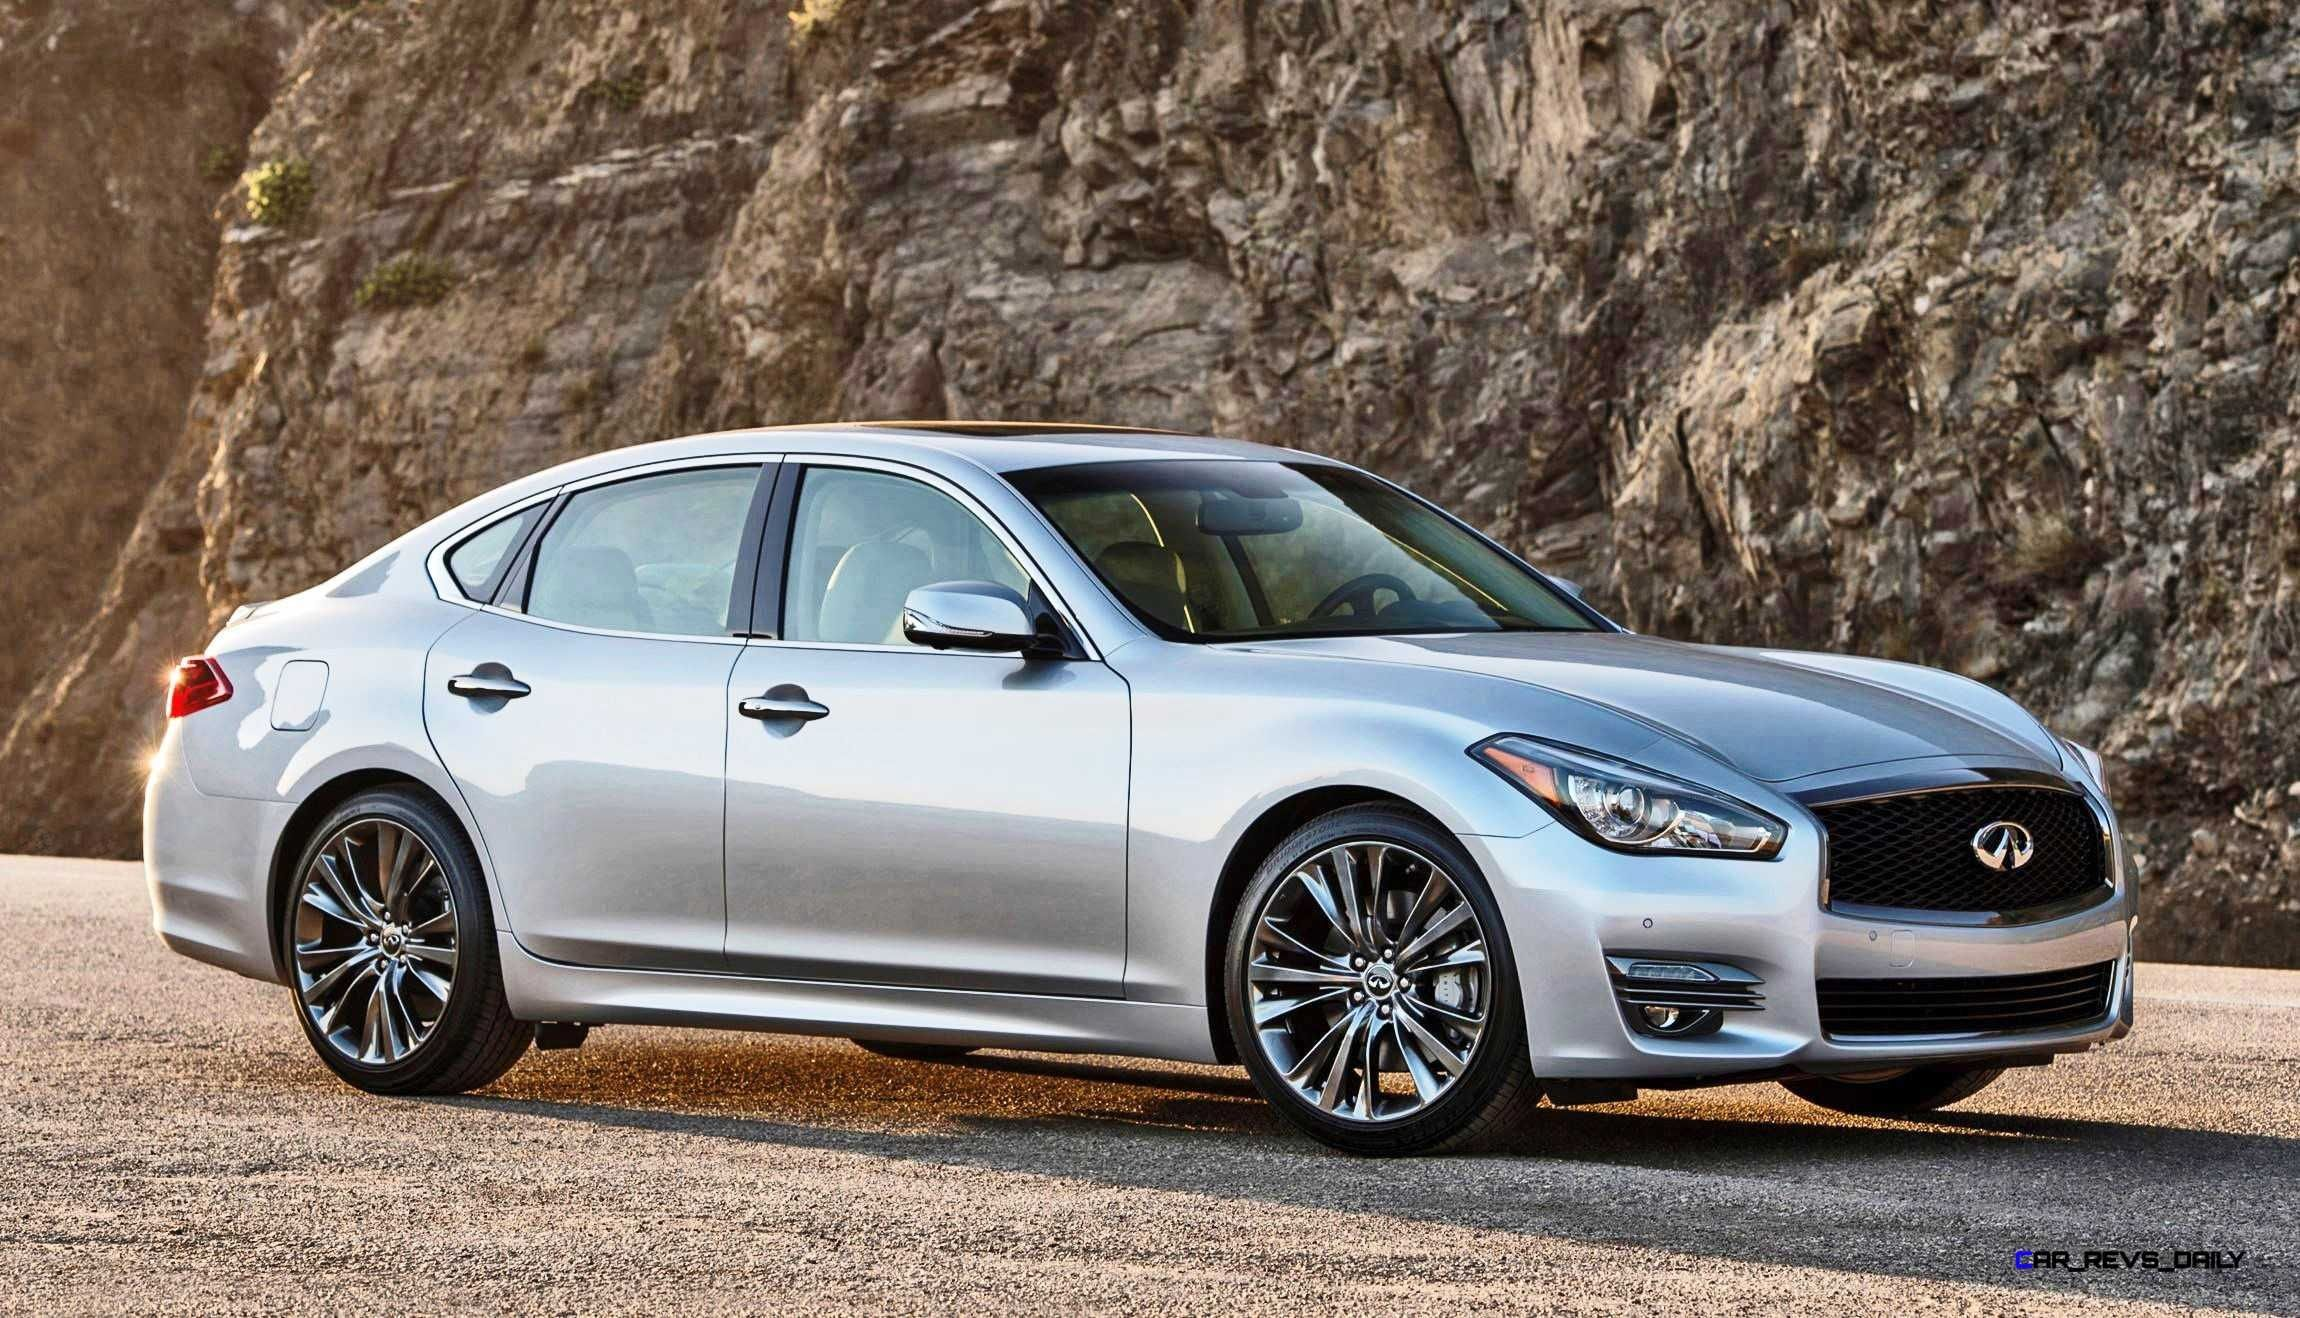 2019 infiniti q70 updates price and release date rumor car 2019 infiniti q70 updates price and release date rumor car rumor infiniti pinterest vanachro Choice Image